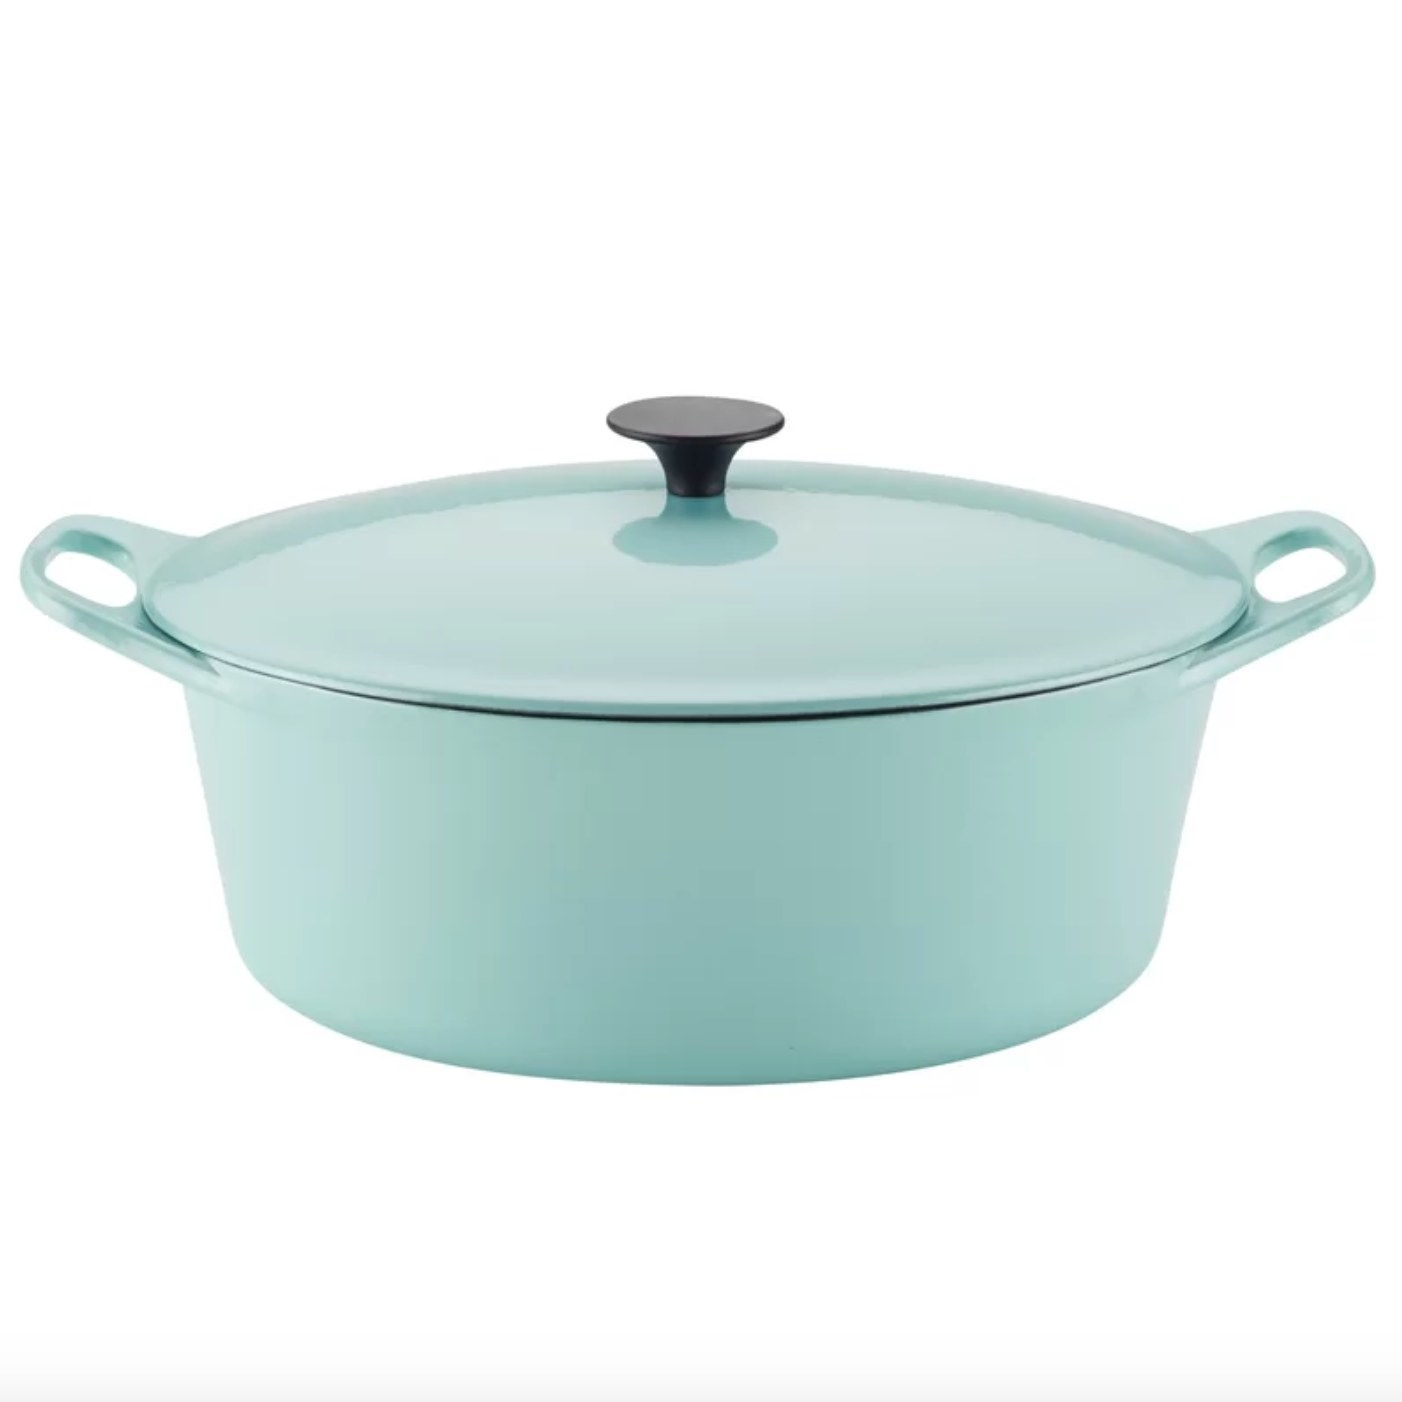 The cast-iron dutch oven in blue